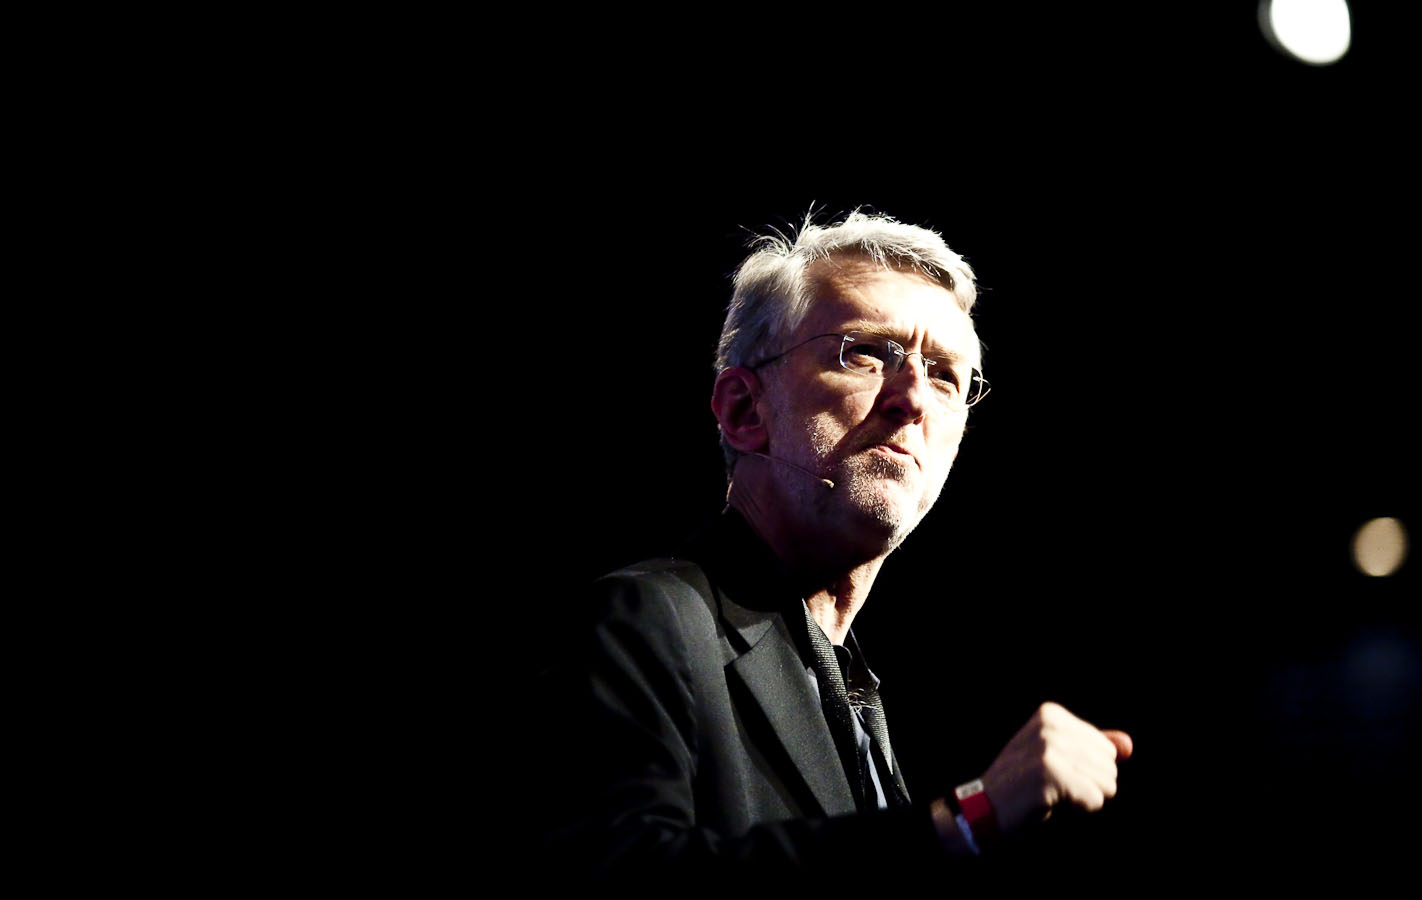 Jeff Jarvis - Foto de republica, Flickr